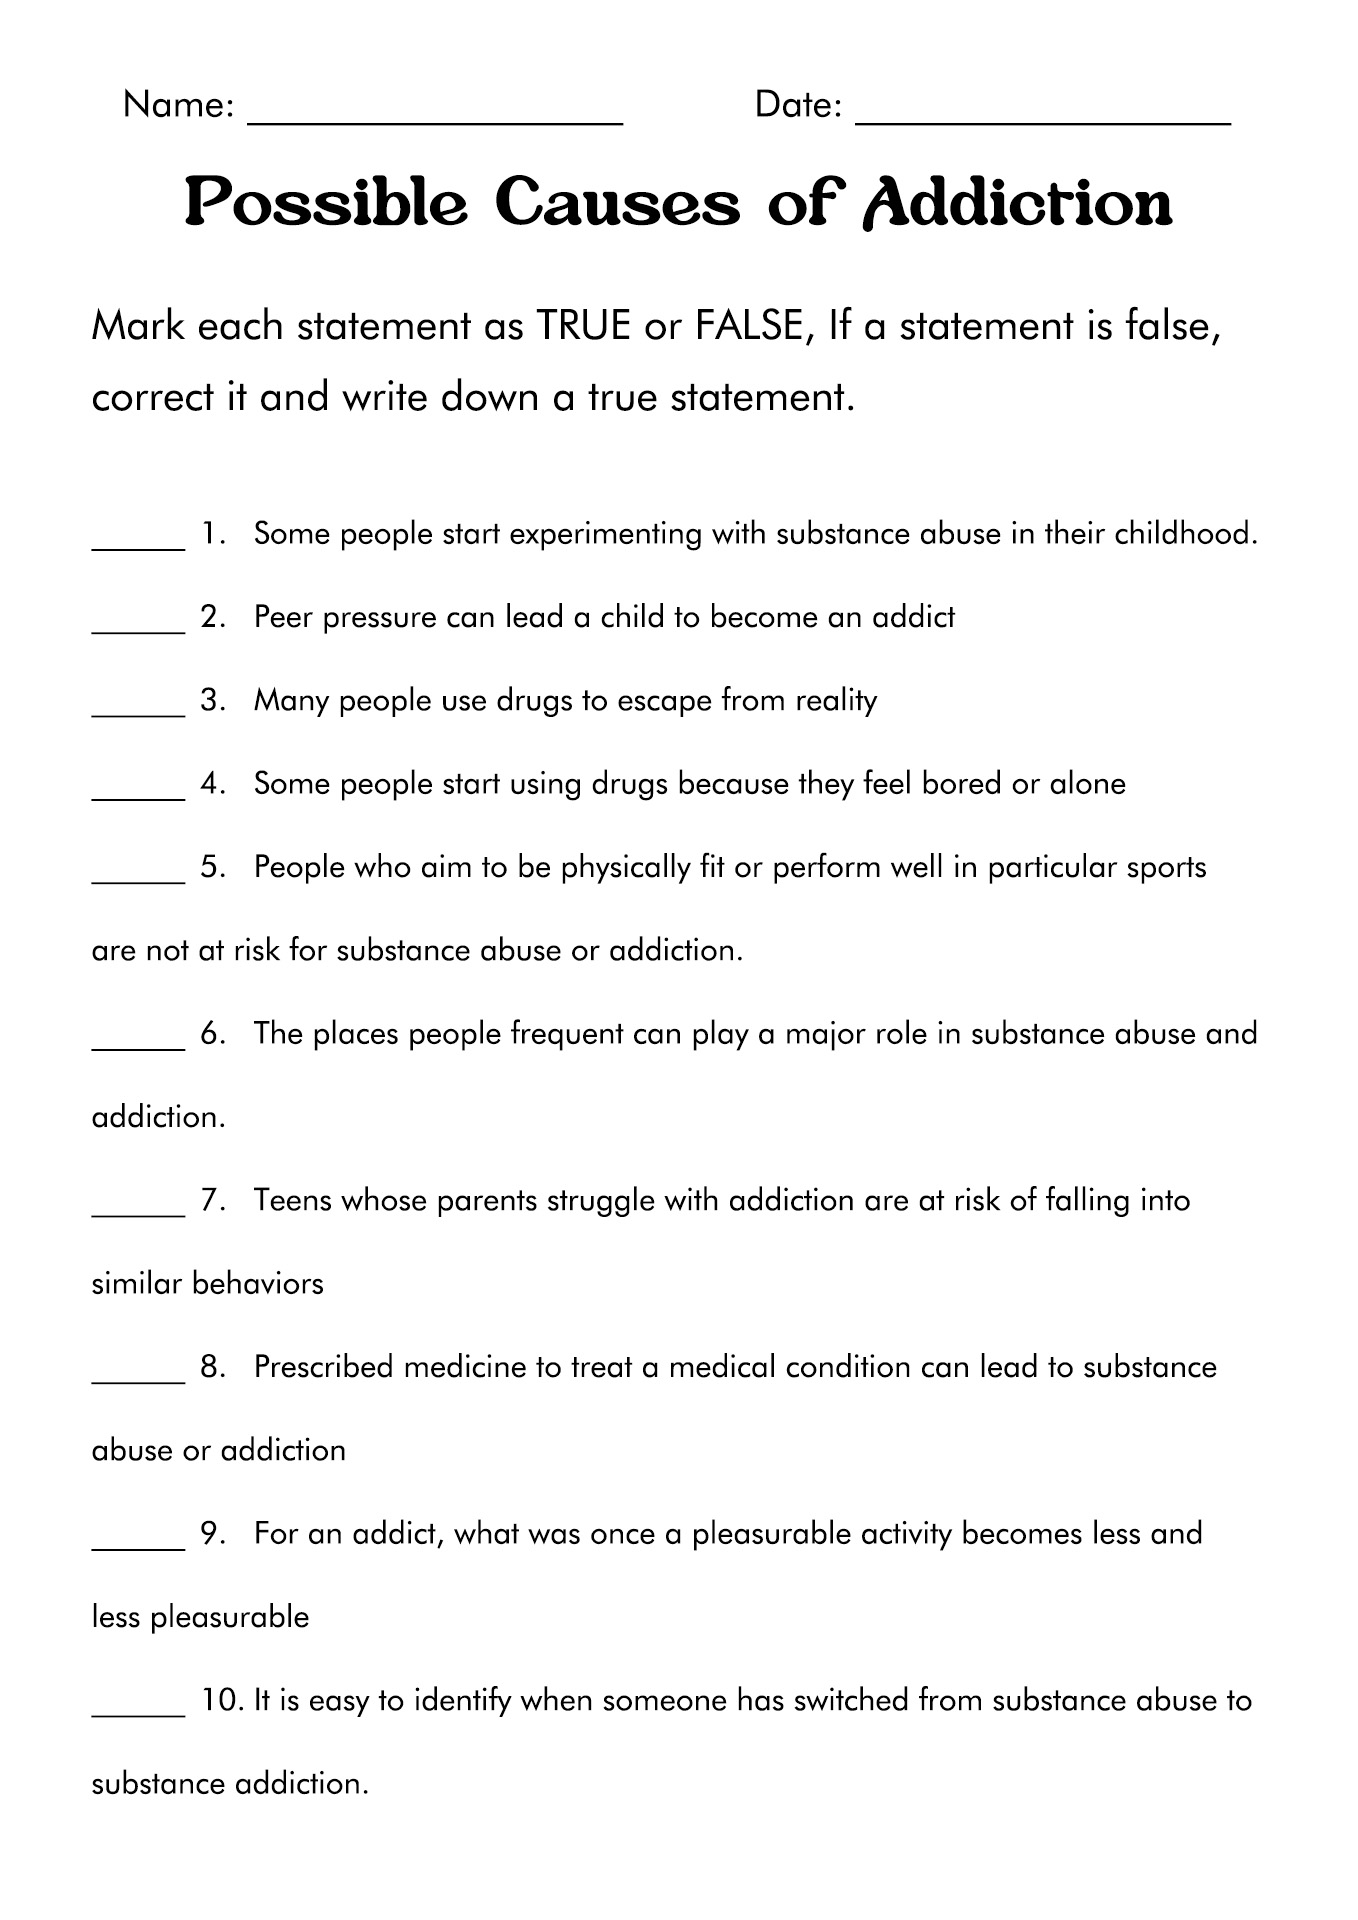 17 Best Images Of Drug And Substance Abuse Worksheets